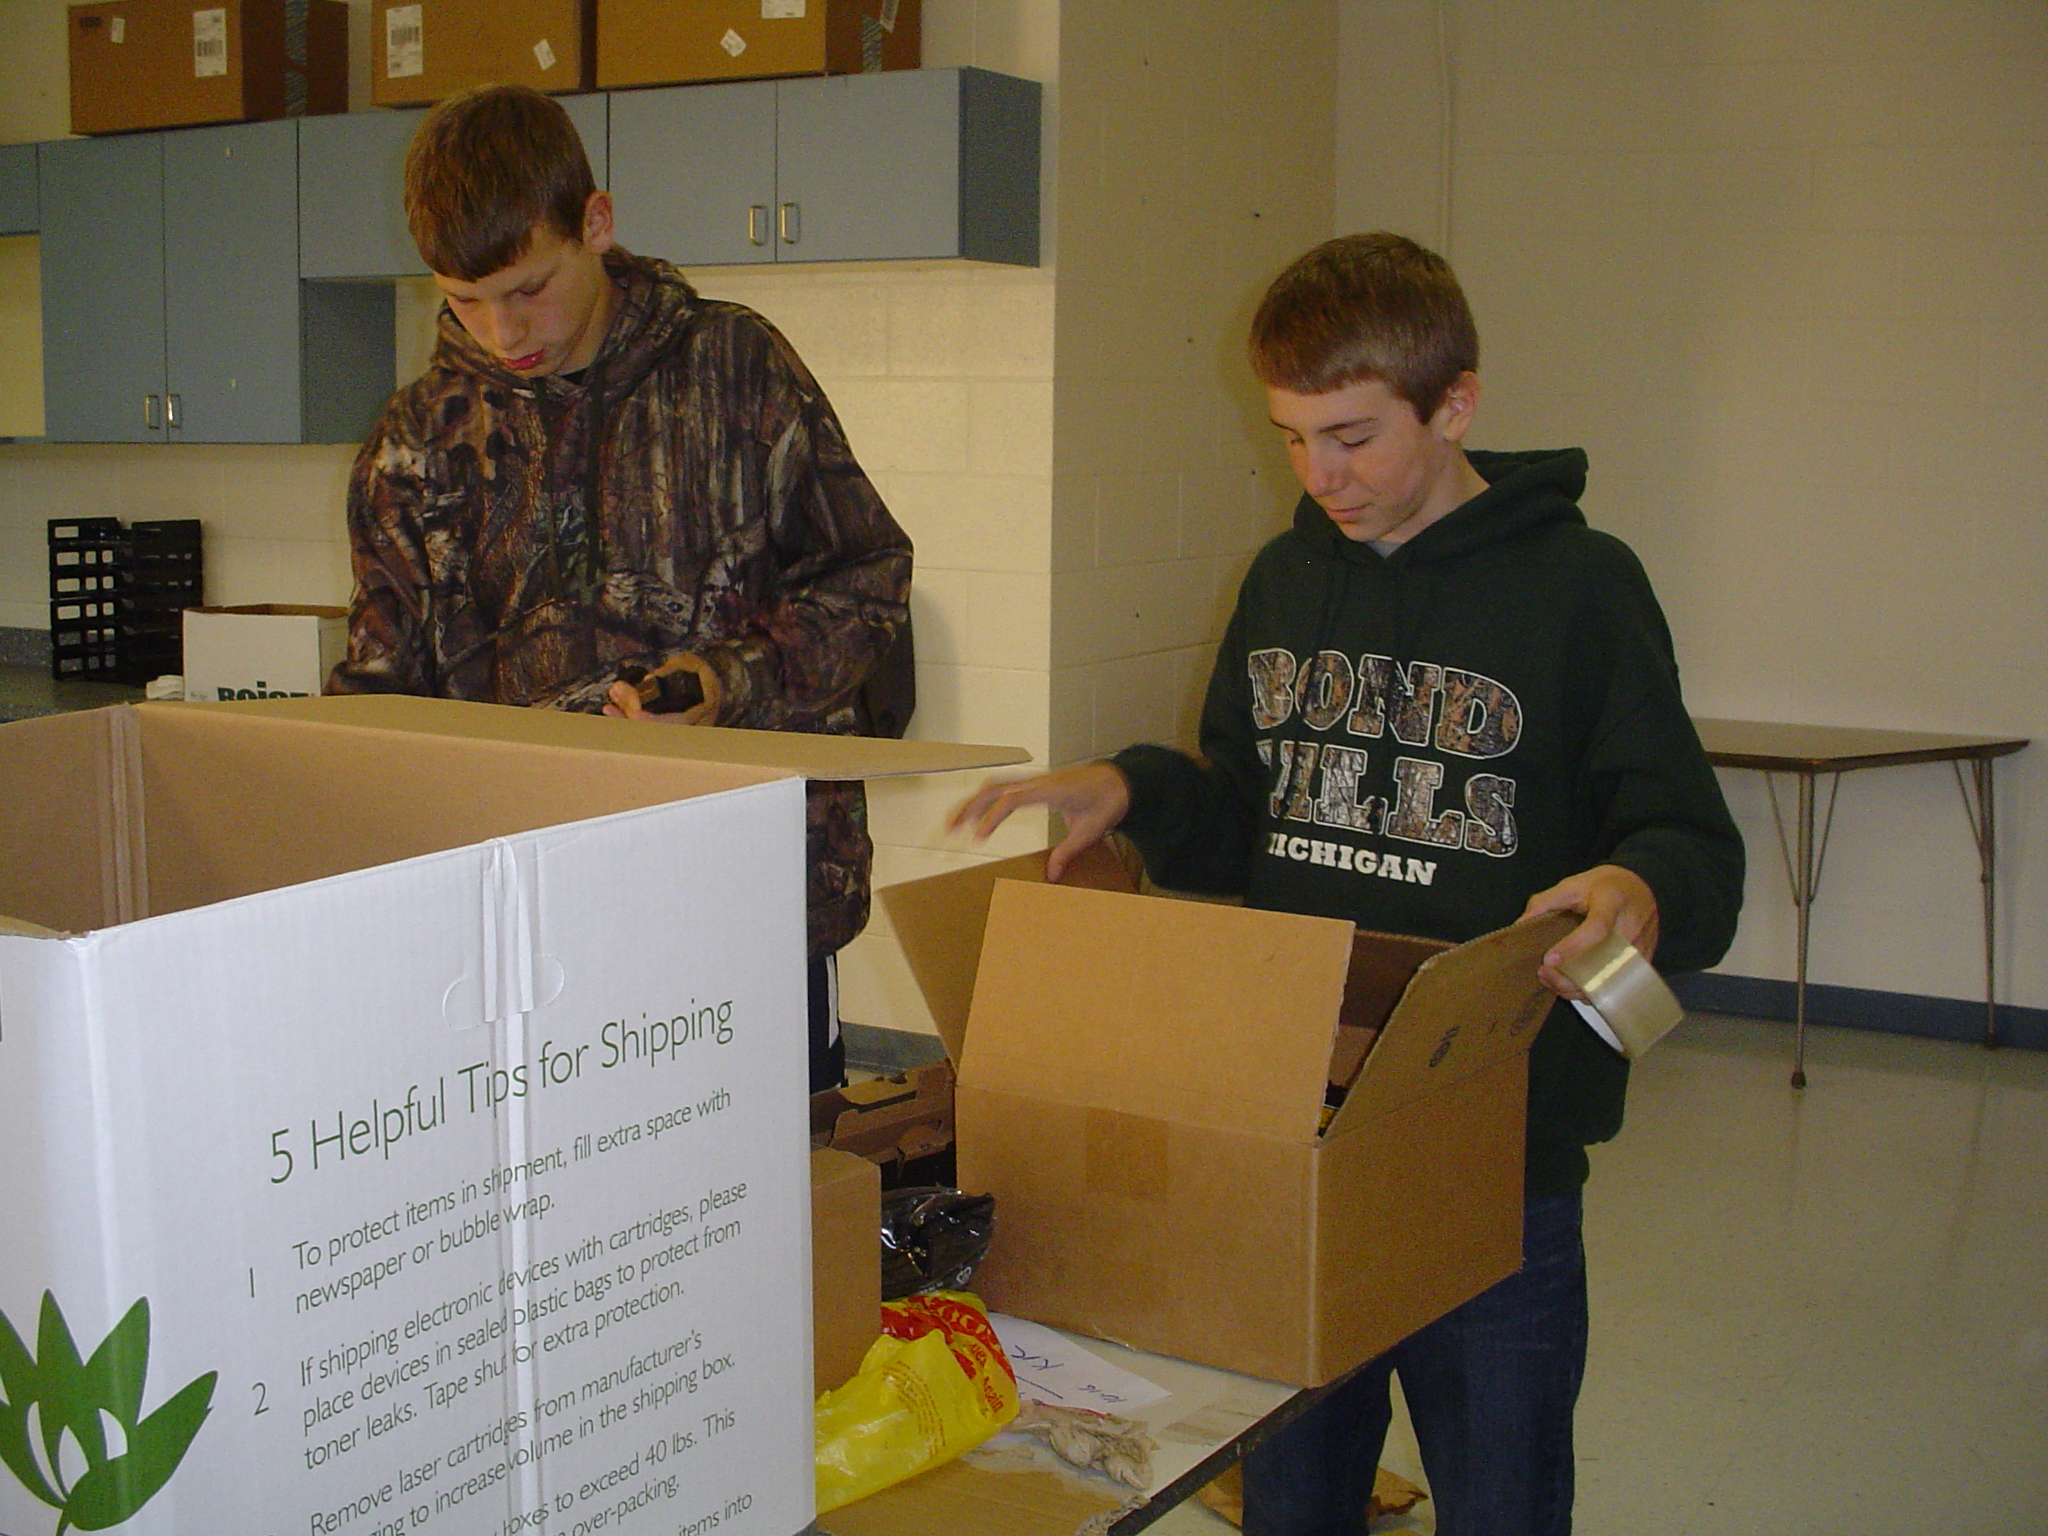 Two Ontonagon students sorting through recyclables and preparing them for shipping